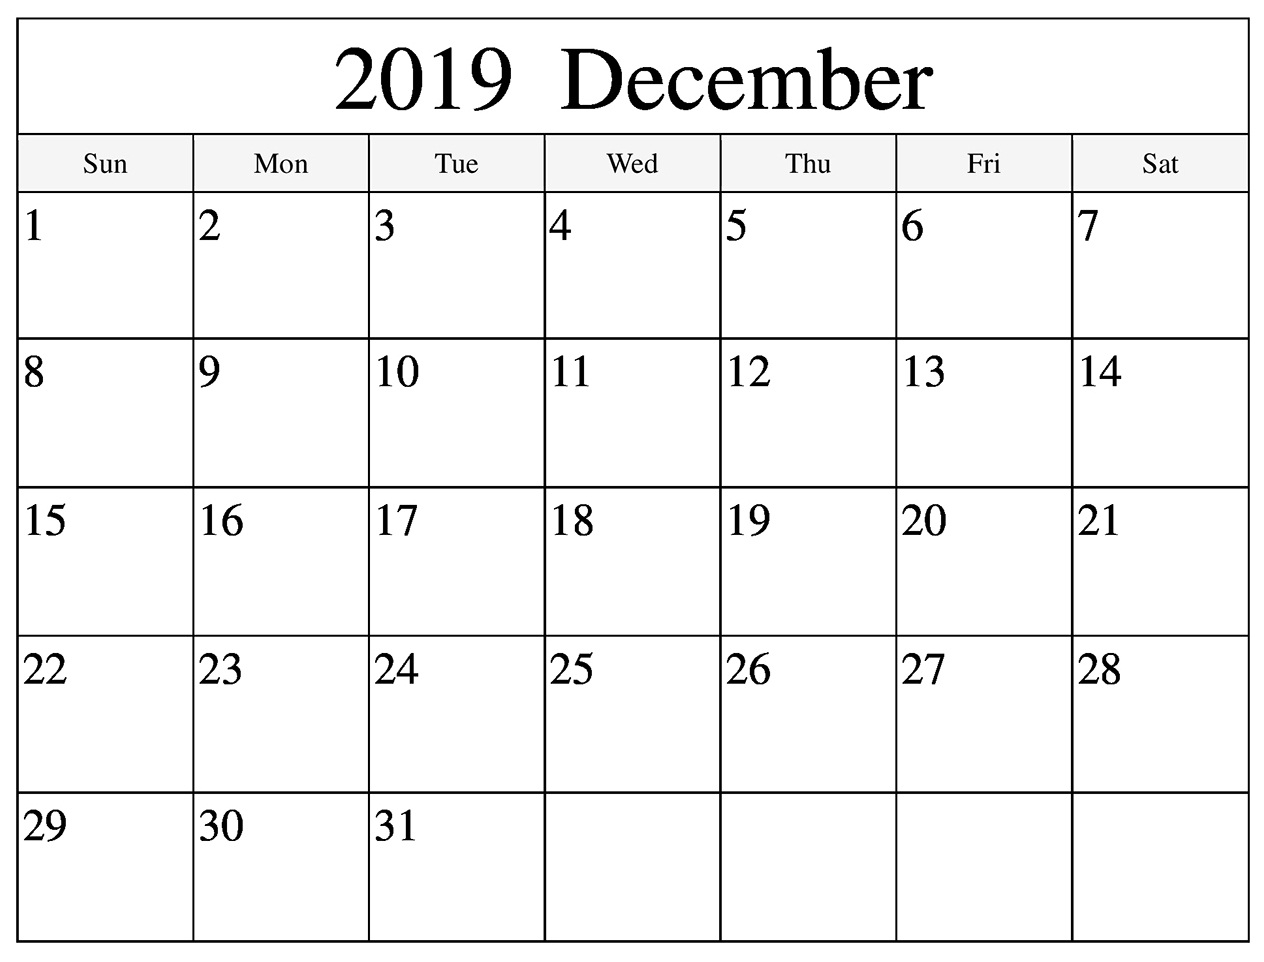 Monthly Calendar For December 2019